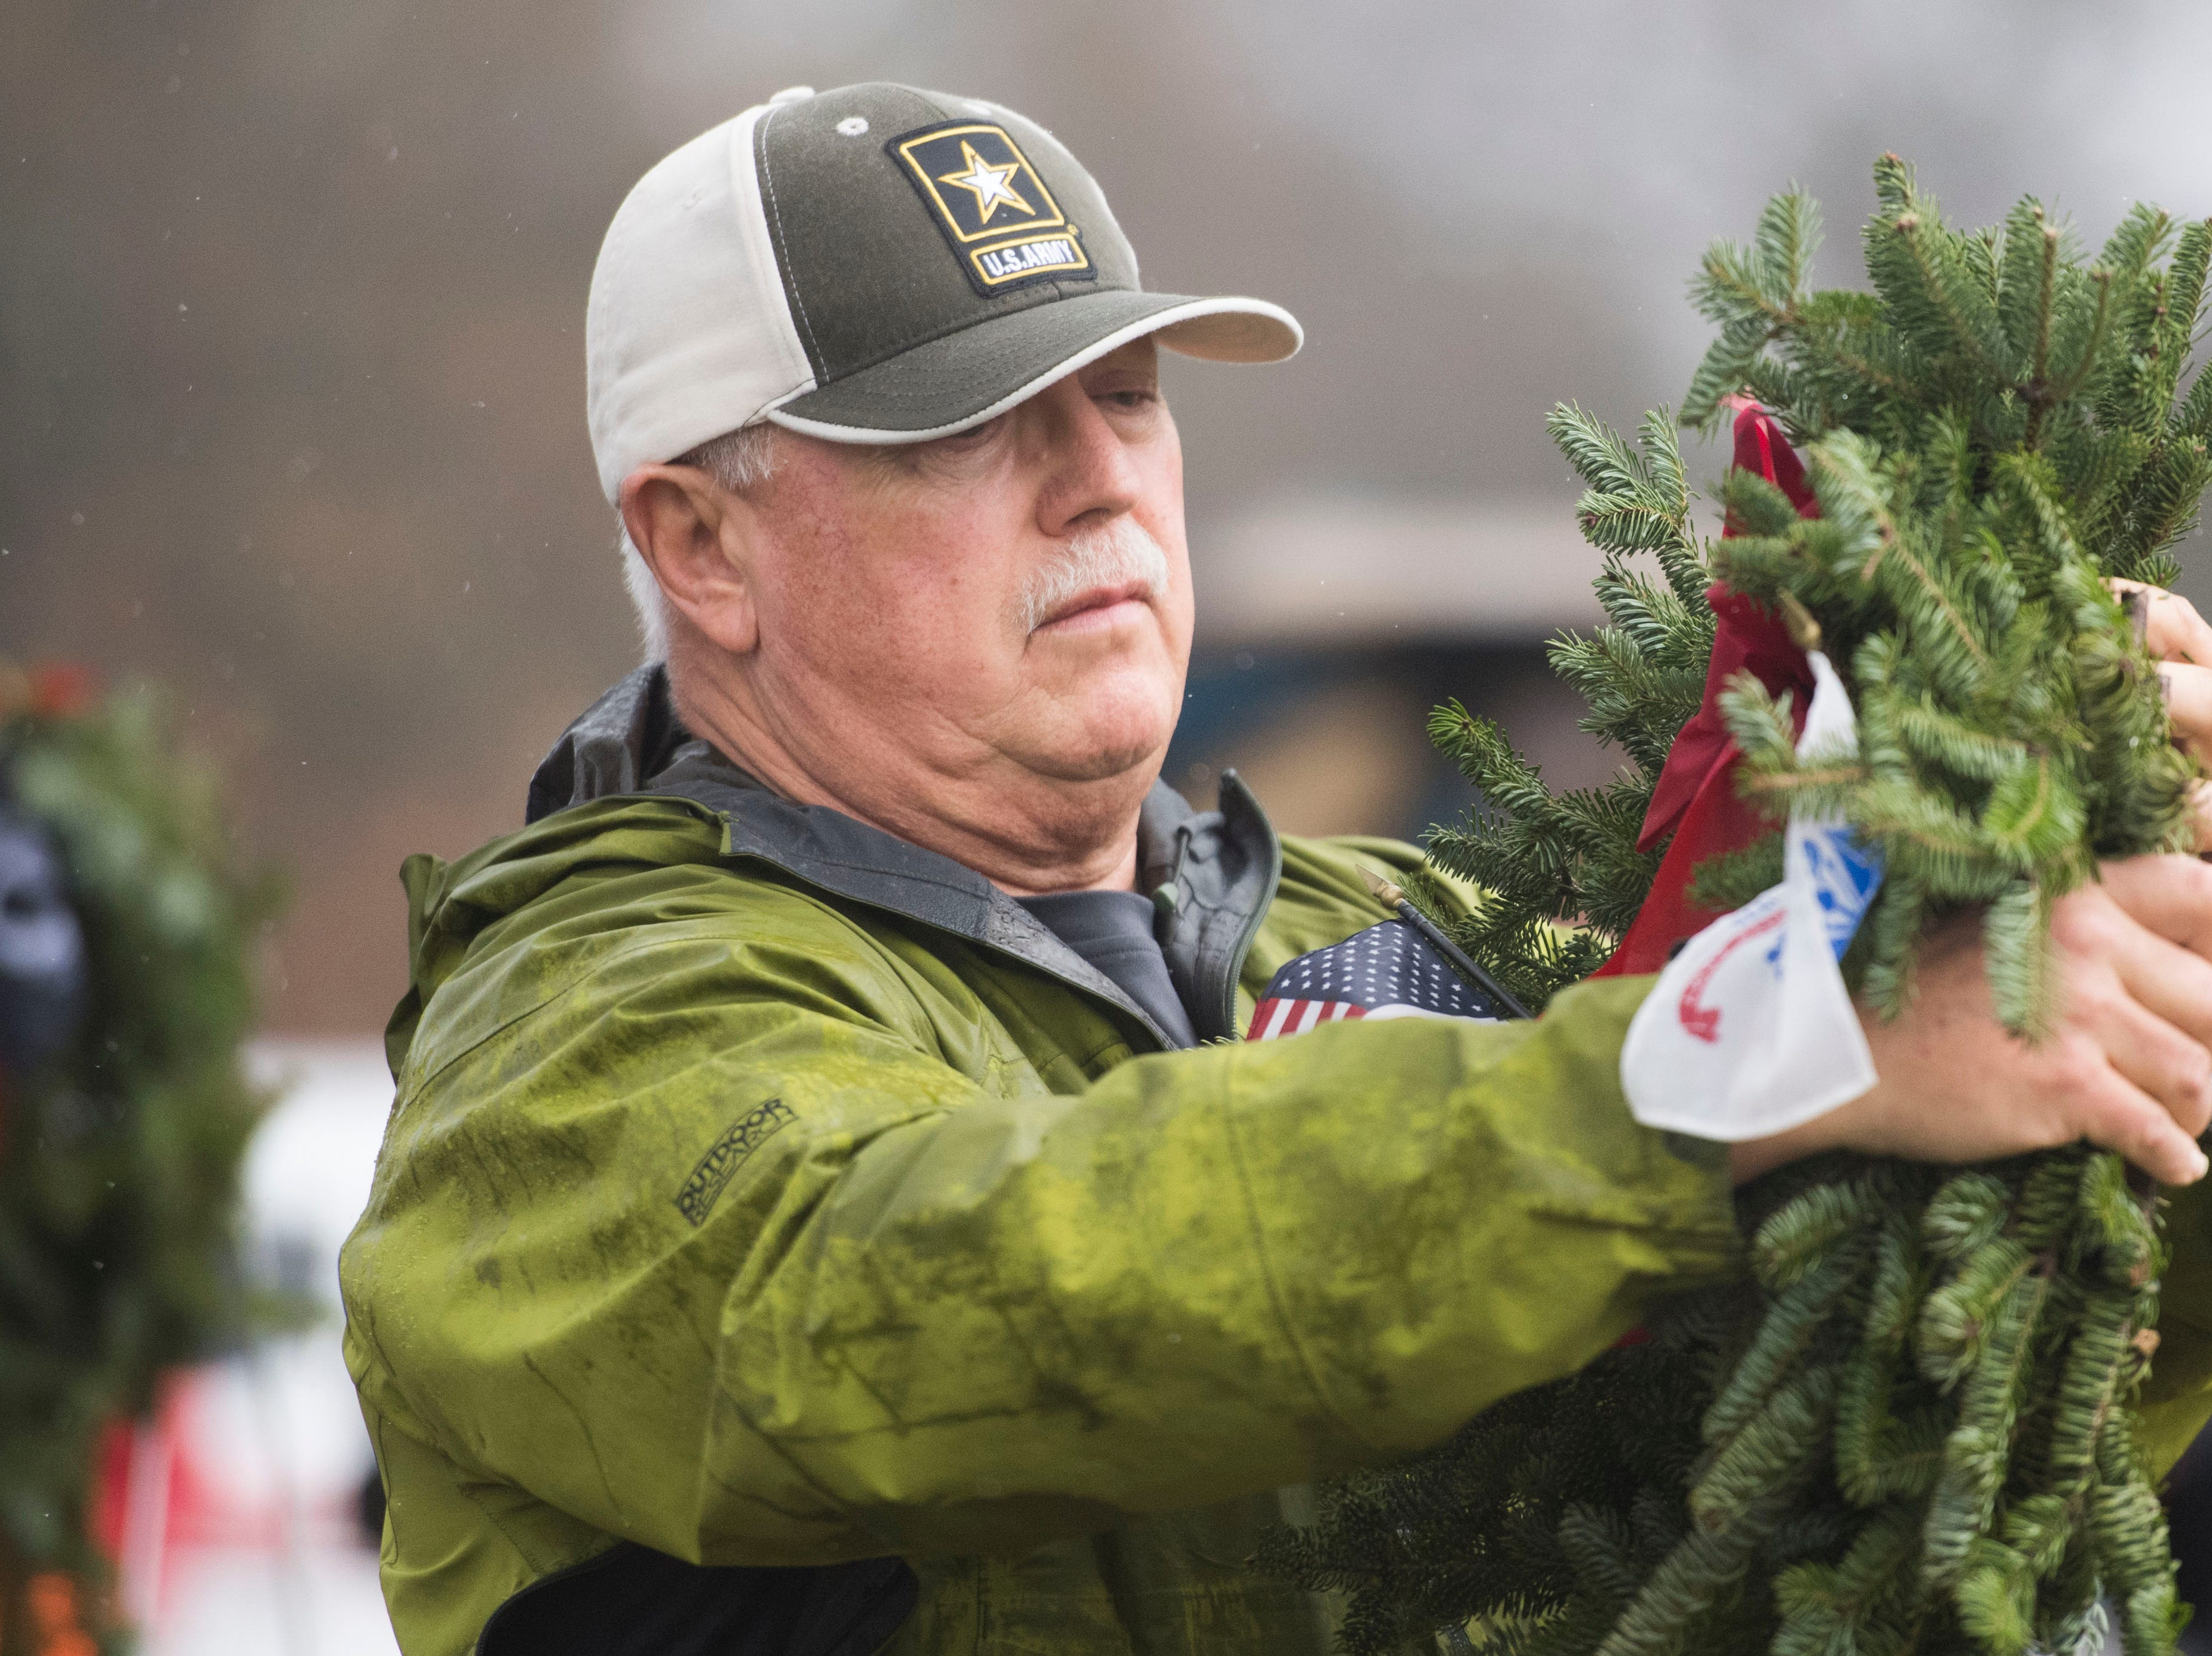 Army veteran Dan Davis places a wreath on a stand during a Wreaths Across America ceremony at Knoxville National Cemetery north of downtown Knoxville Saturday, Dec. 15, 2018. Evergreen wreaths were placed on veteran headstones.